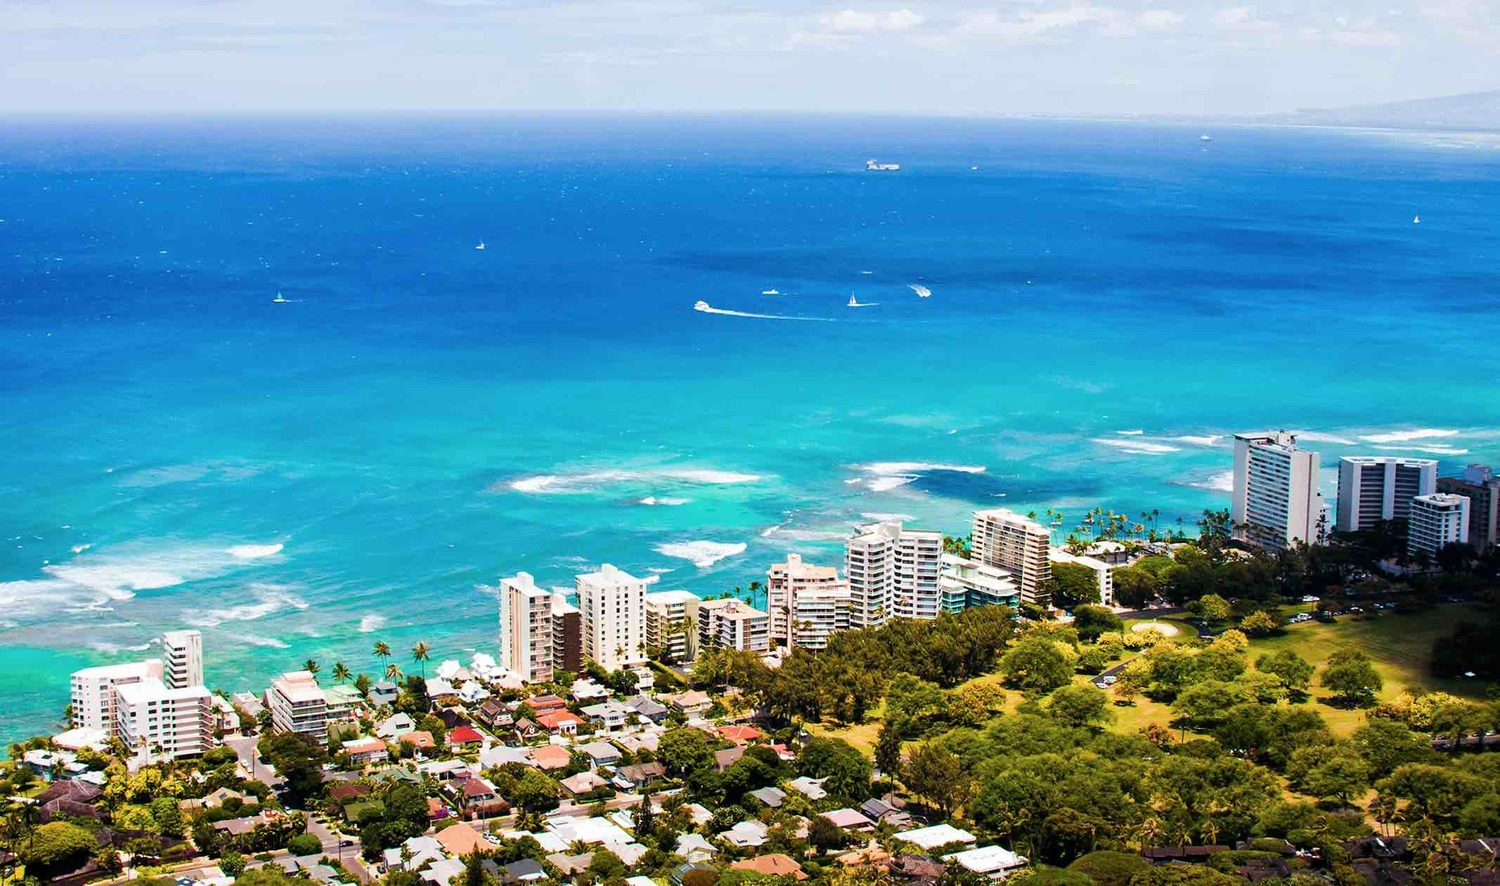 Honolulu Hotels with Best Waikiki Views — The Most Perfect View